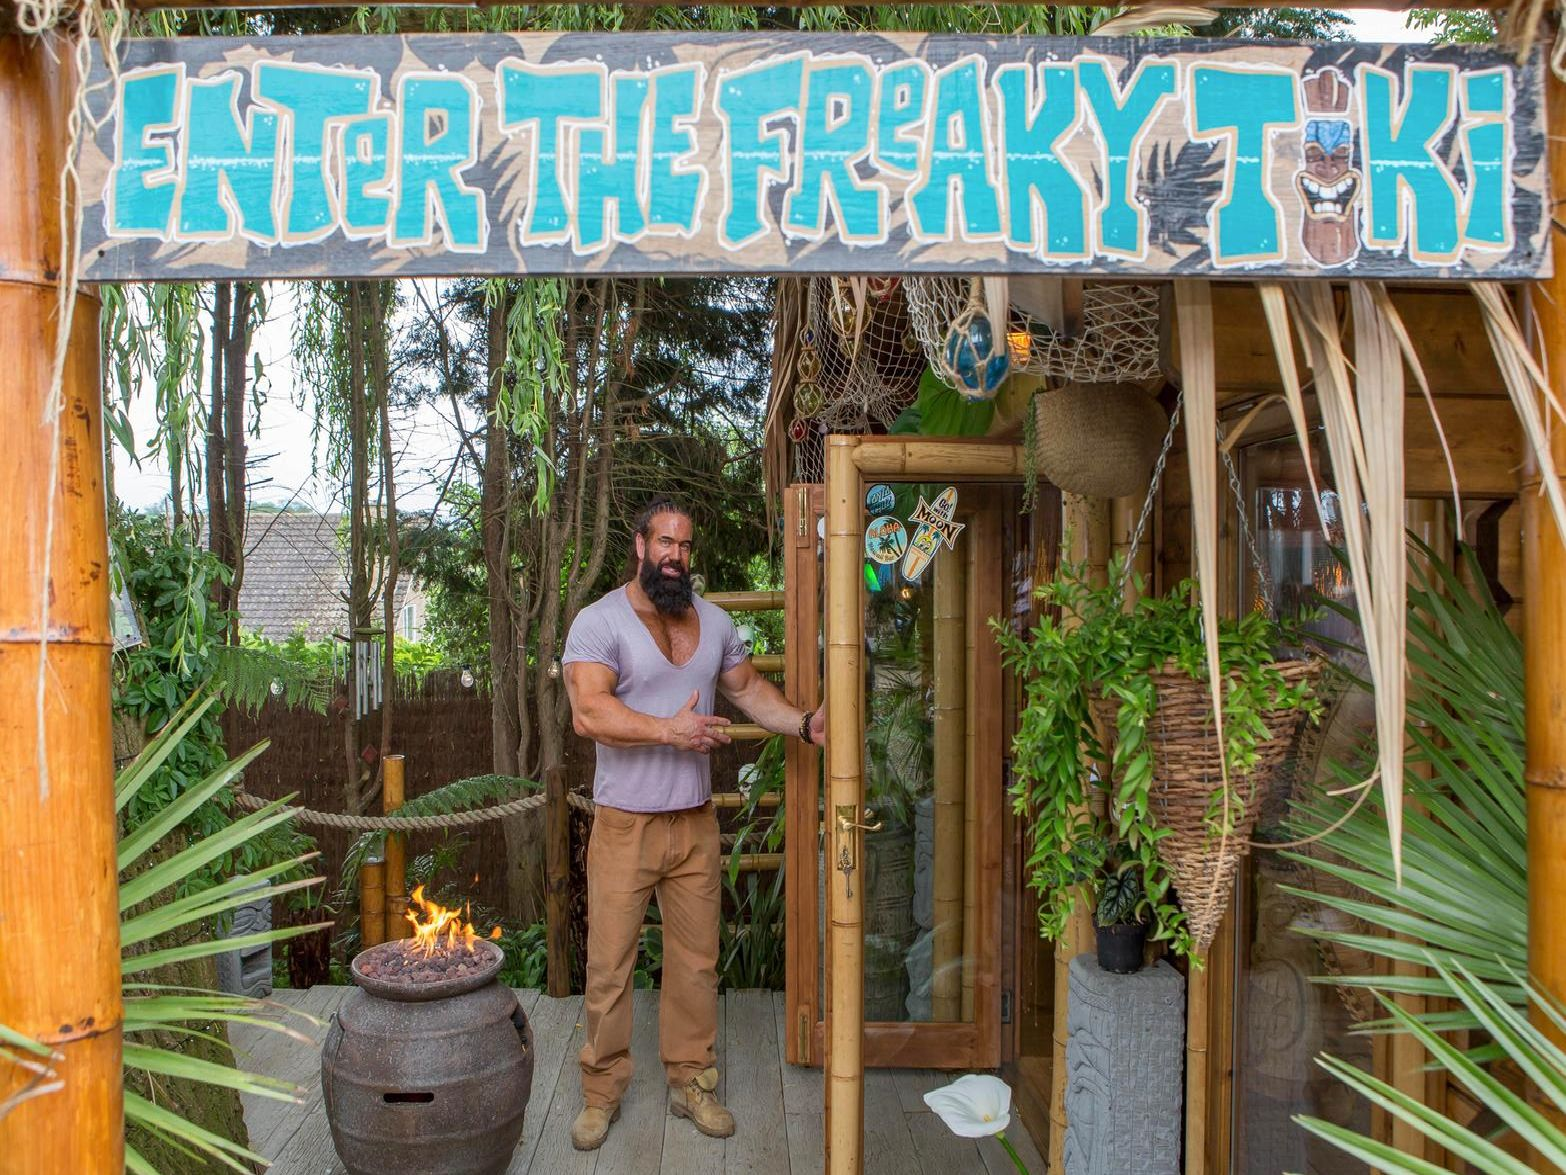 Chris Smith's tiki-inspired paradise in his back garden in Wollaston. Photo: Cuprinol